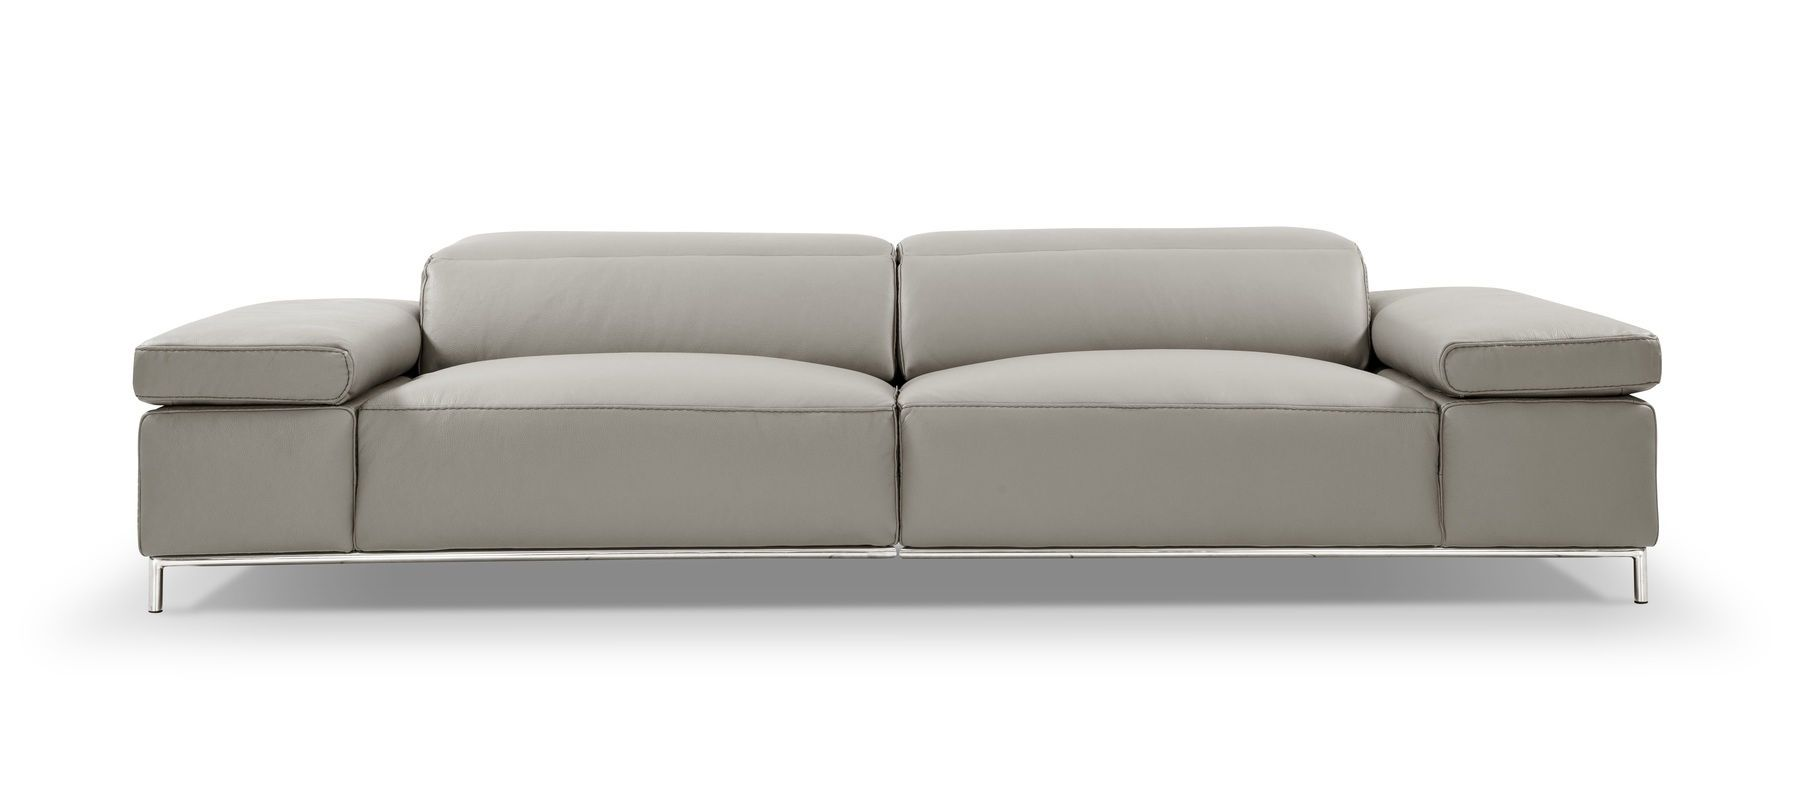 Jm800 Sofa In 2020 Sofa Grey Leather Sofa Leather Sofa